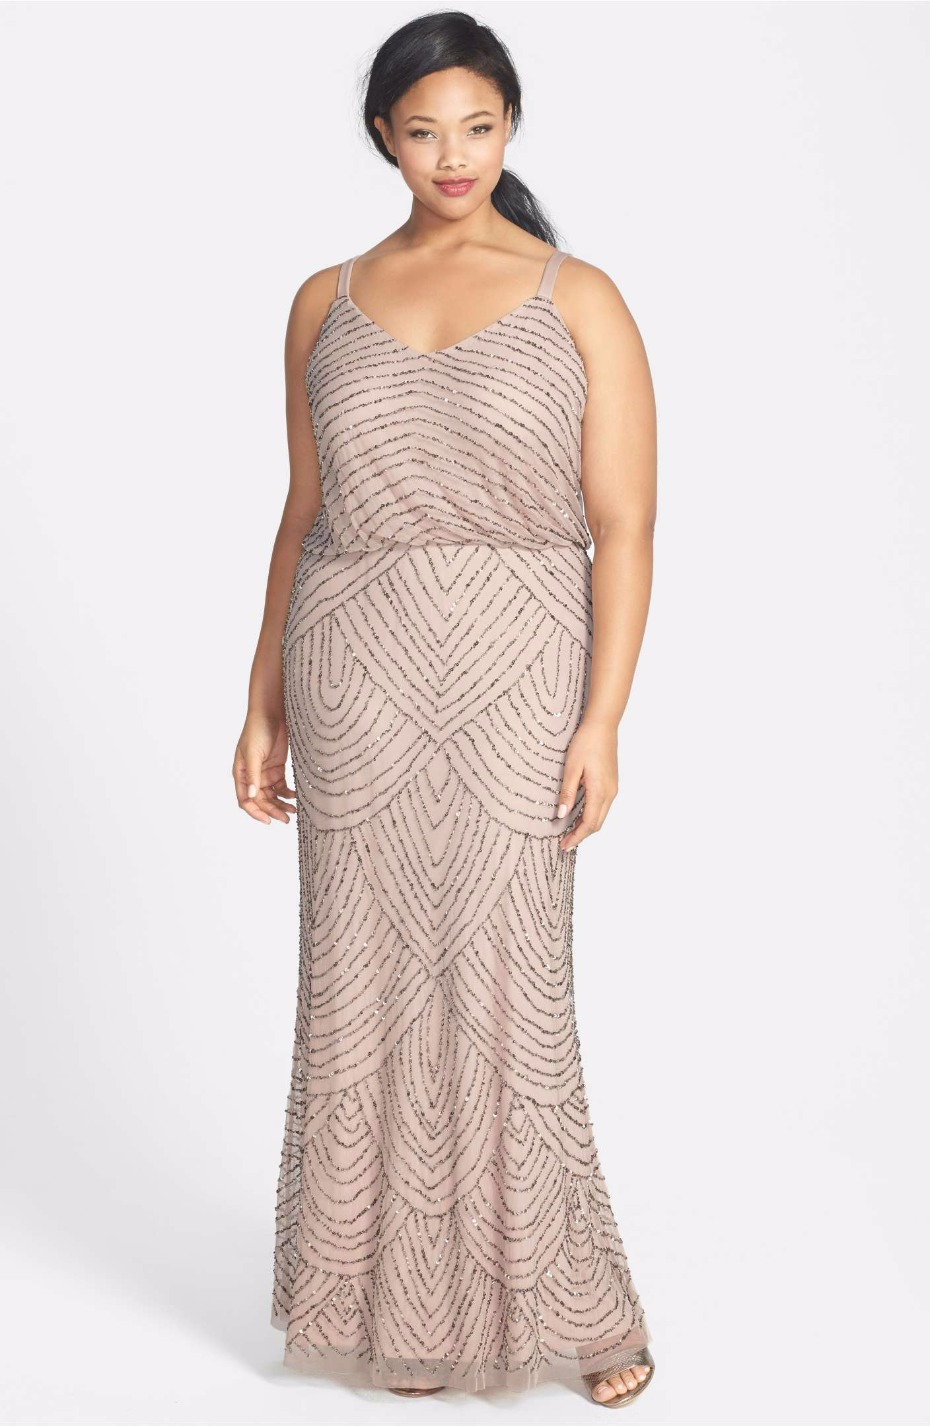 10 Plus Sized Mother of the Bride Dresses You'll Love